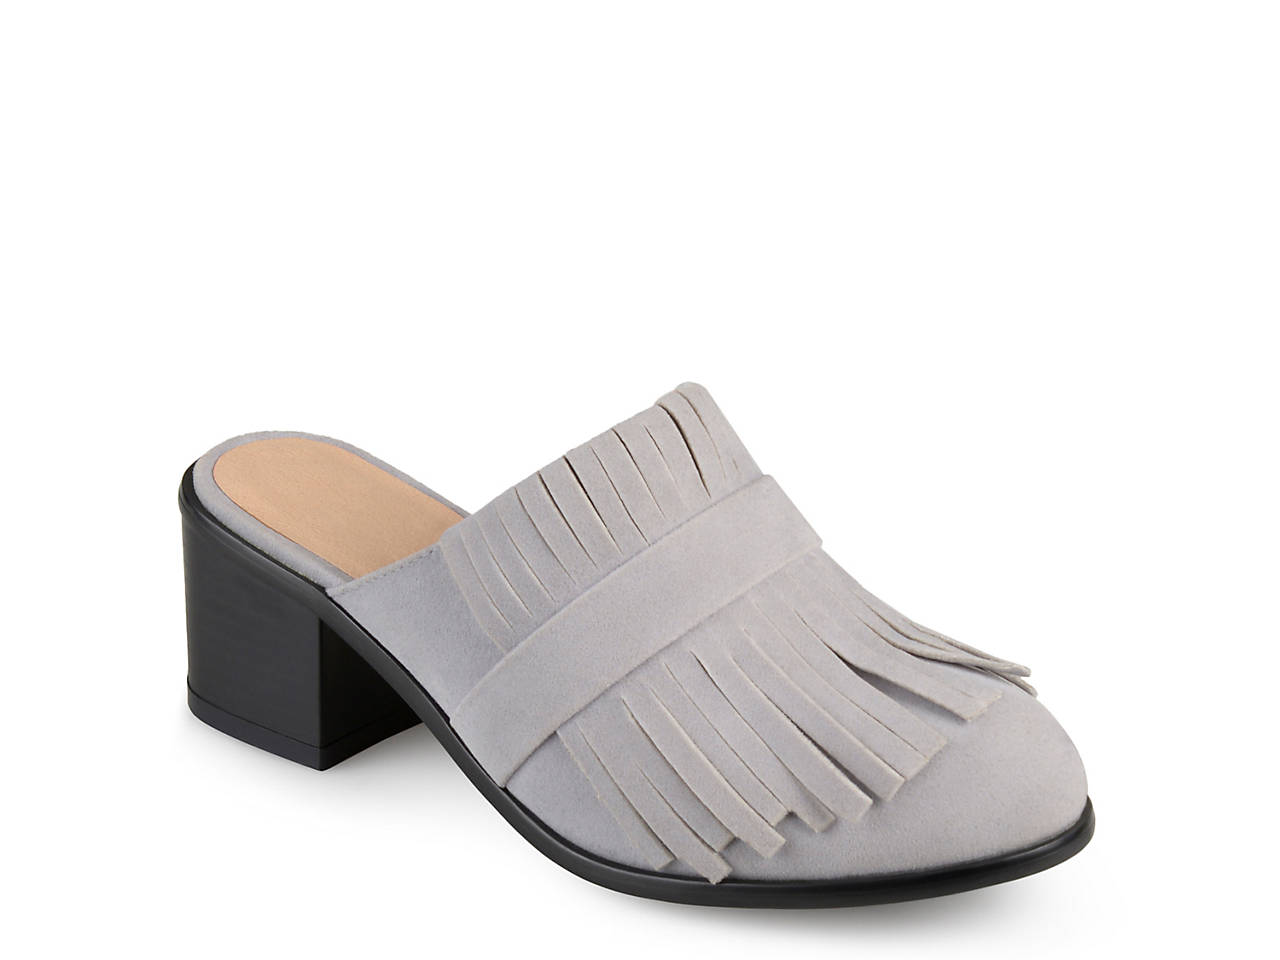 Journee Collection Evelyn ... Women's Mules p85yla